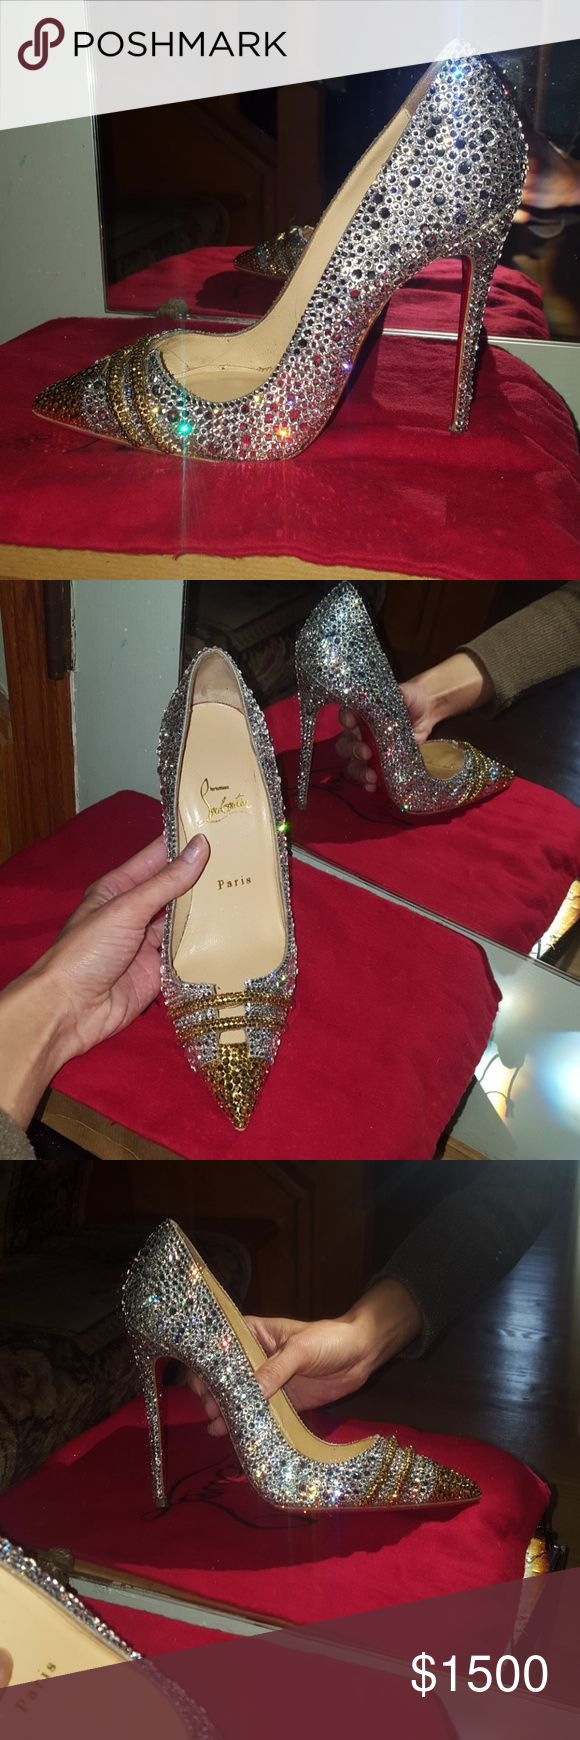 Christian louboutin so Kate specchio strass 120mm 💯Authentic Swarovski Crystal clear with aurum crystal (which is 24k gold).size 37.. Excellent condition,price is firm here on posh!! Only worn twice!! Red bottom sole protection has been installed!! No crystal missing!! No box but I do have both dust bags and can provide a louboutin box. Due to the rarity of these heels I will not accept offers🚫🚫🚫!! Posh concierge will approve !😀😀😀😀🙌🙌🙌🚫NO TRADES! Christian Louboutin Shoes Heels